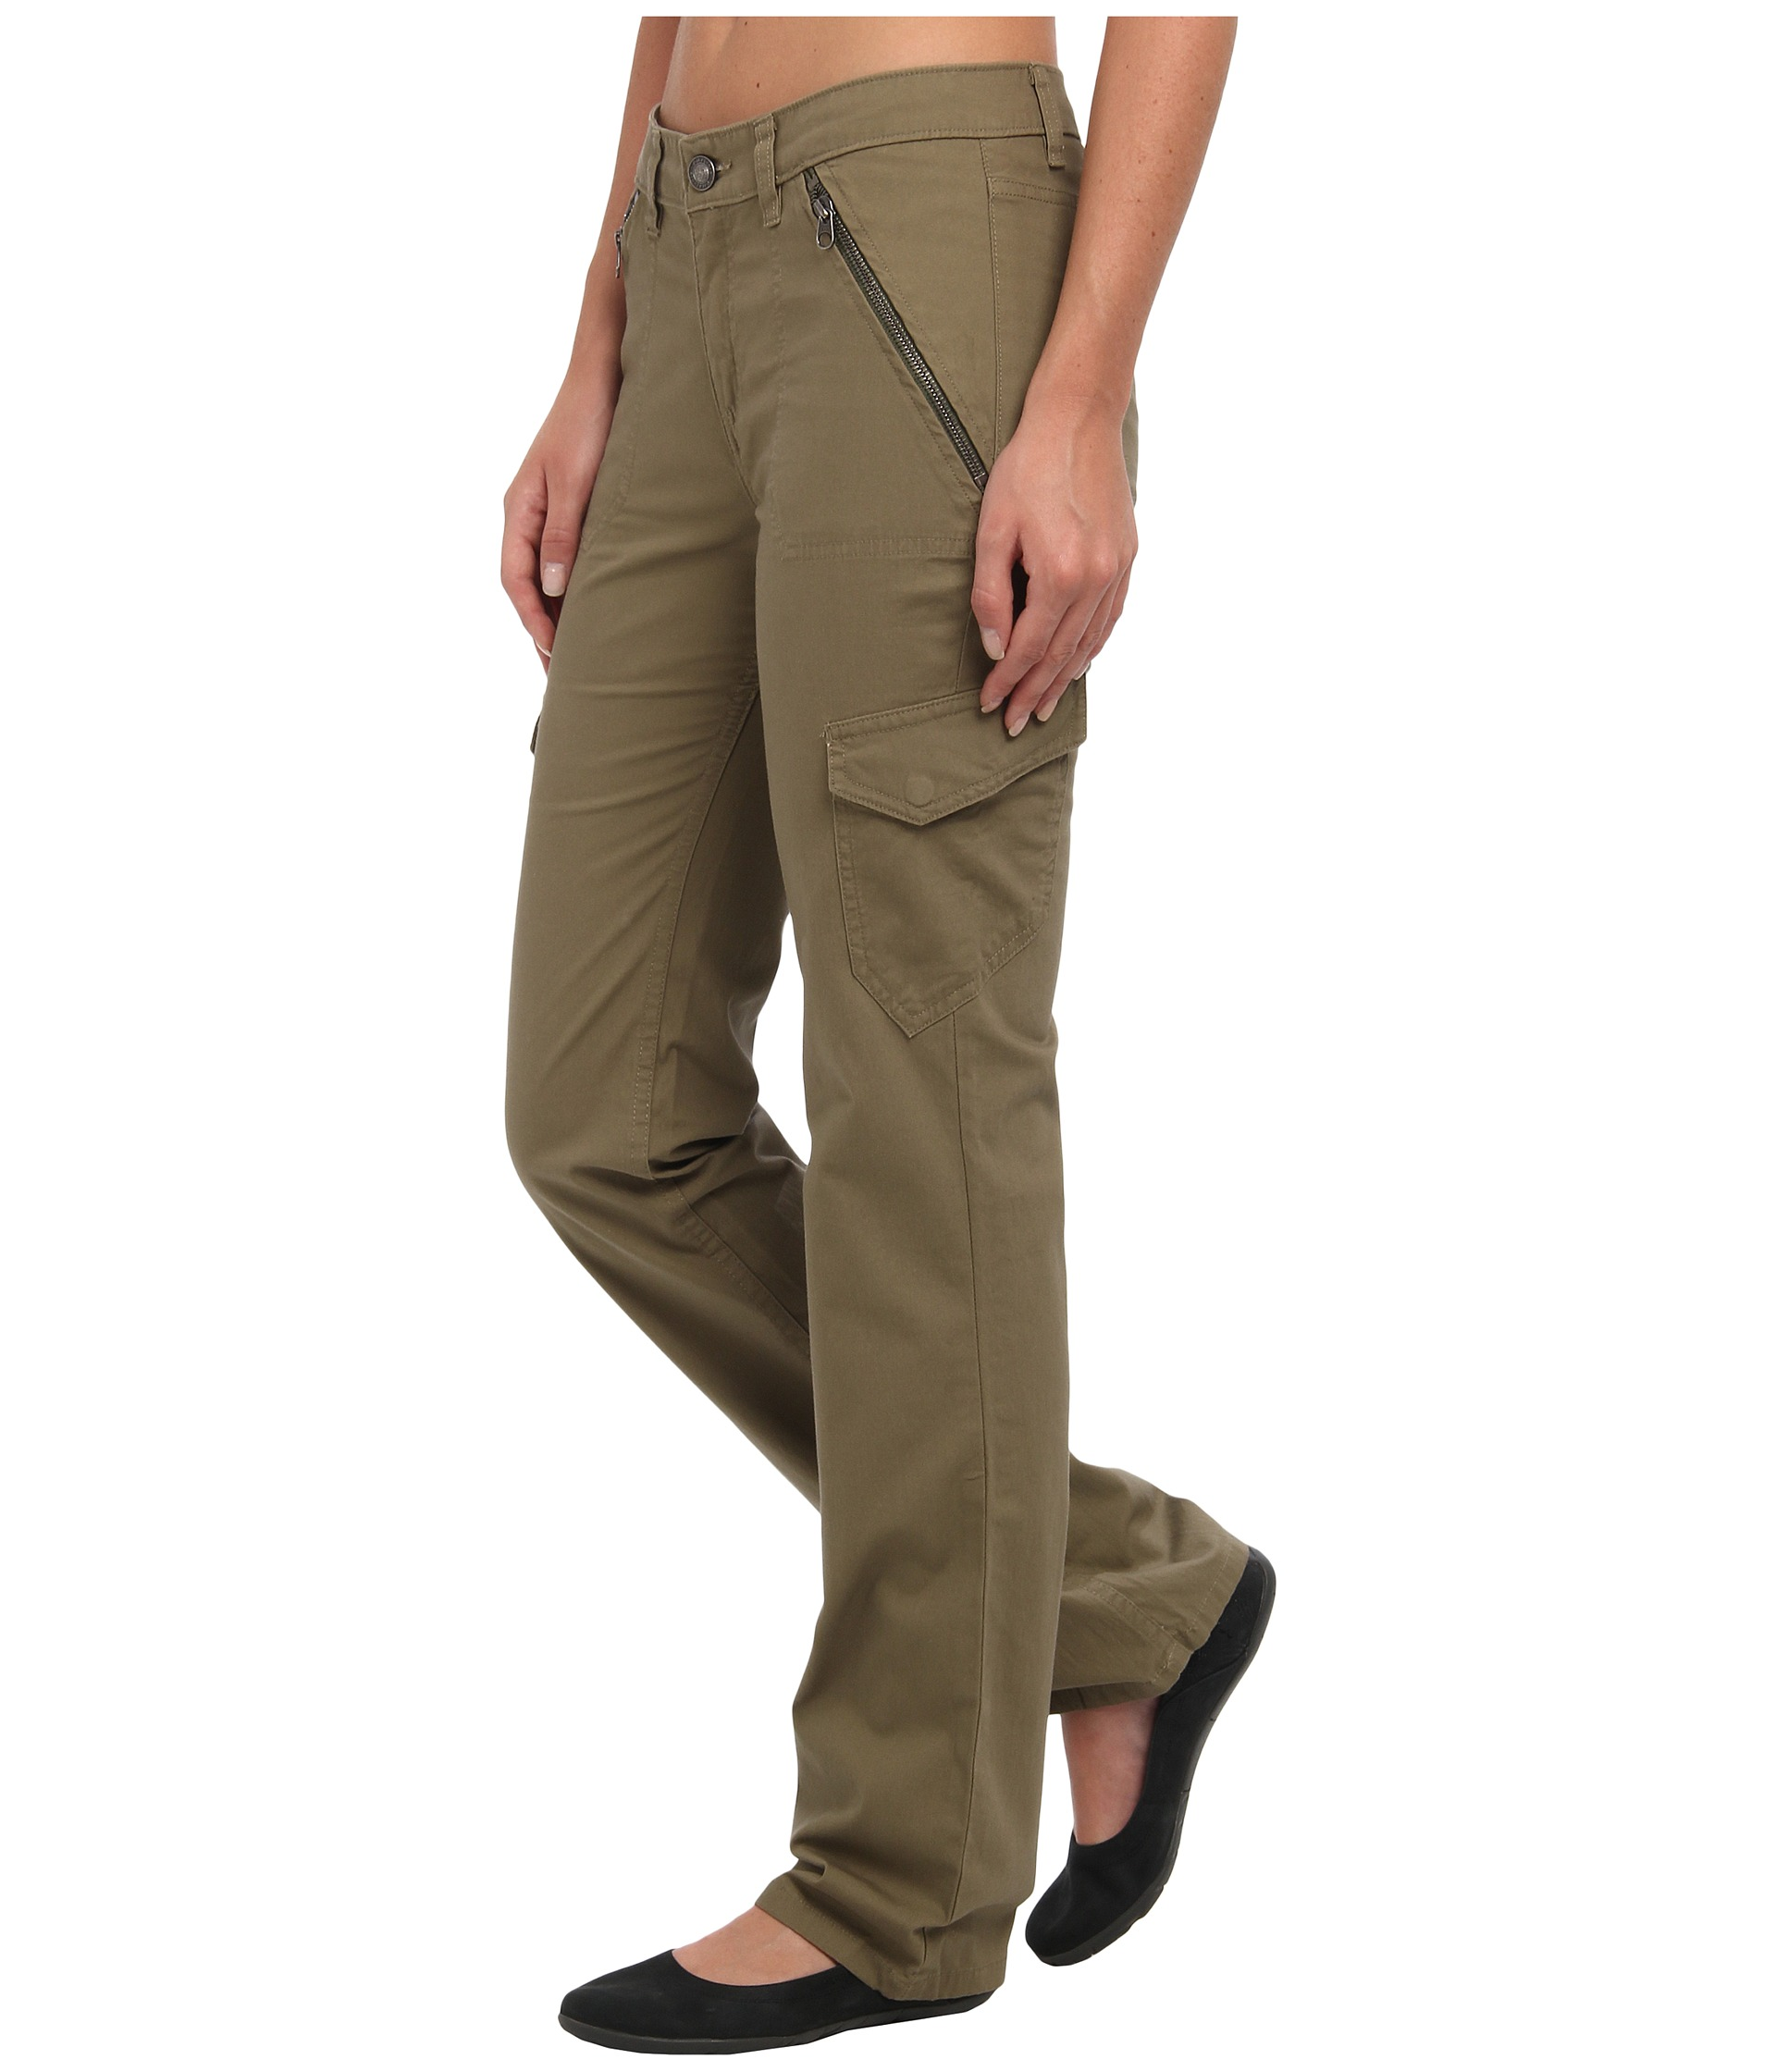 Dickies' Stretch Cargo Pants are ready for action. Any on-the-go woman will feel confident in these stretch twill, straight leg pants. The bellowed cargo pockets, multi-use pockets and back flap pockets provide a lot of utility needed for working on special projects.